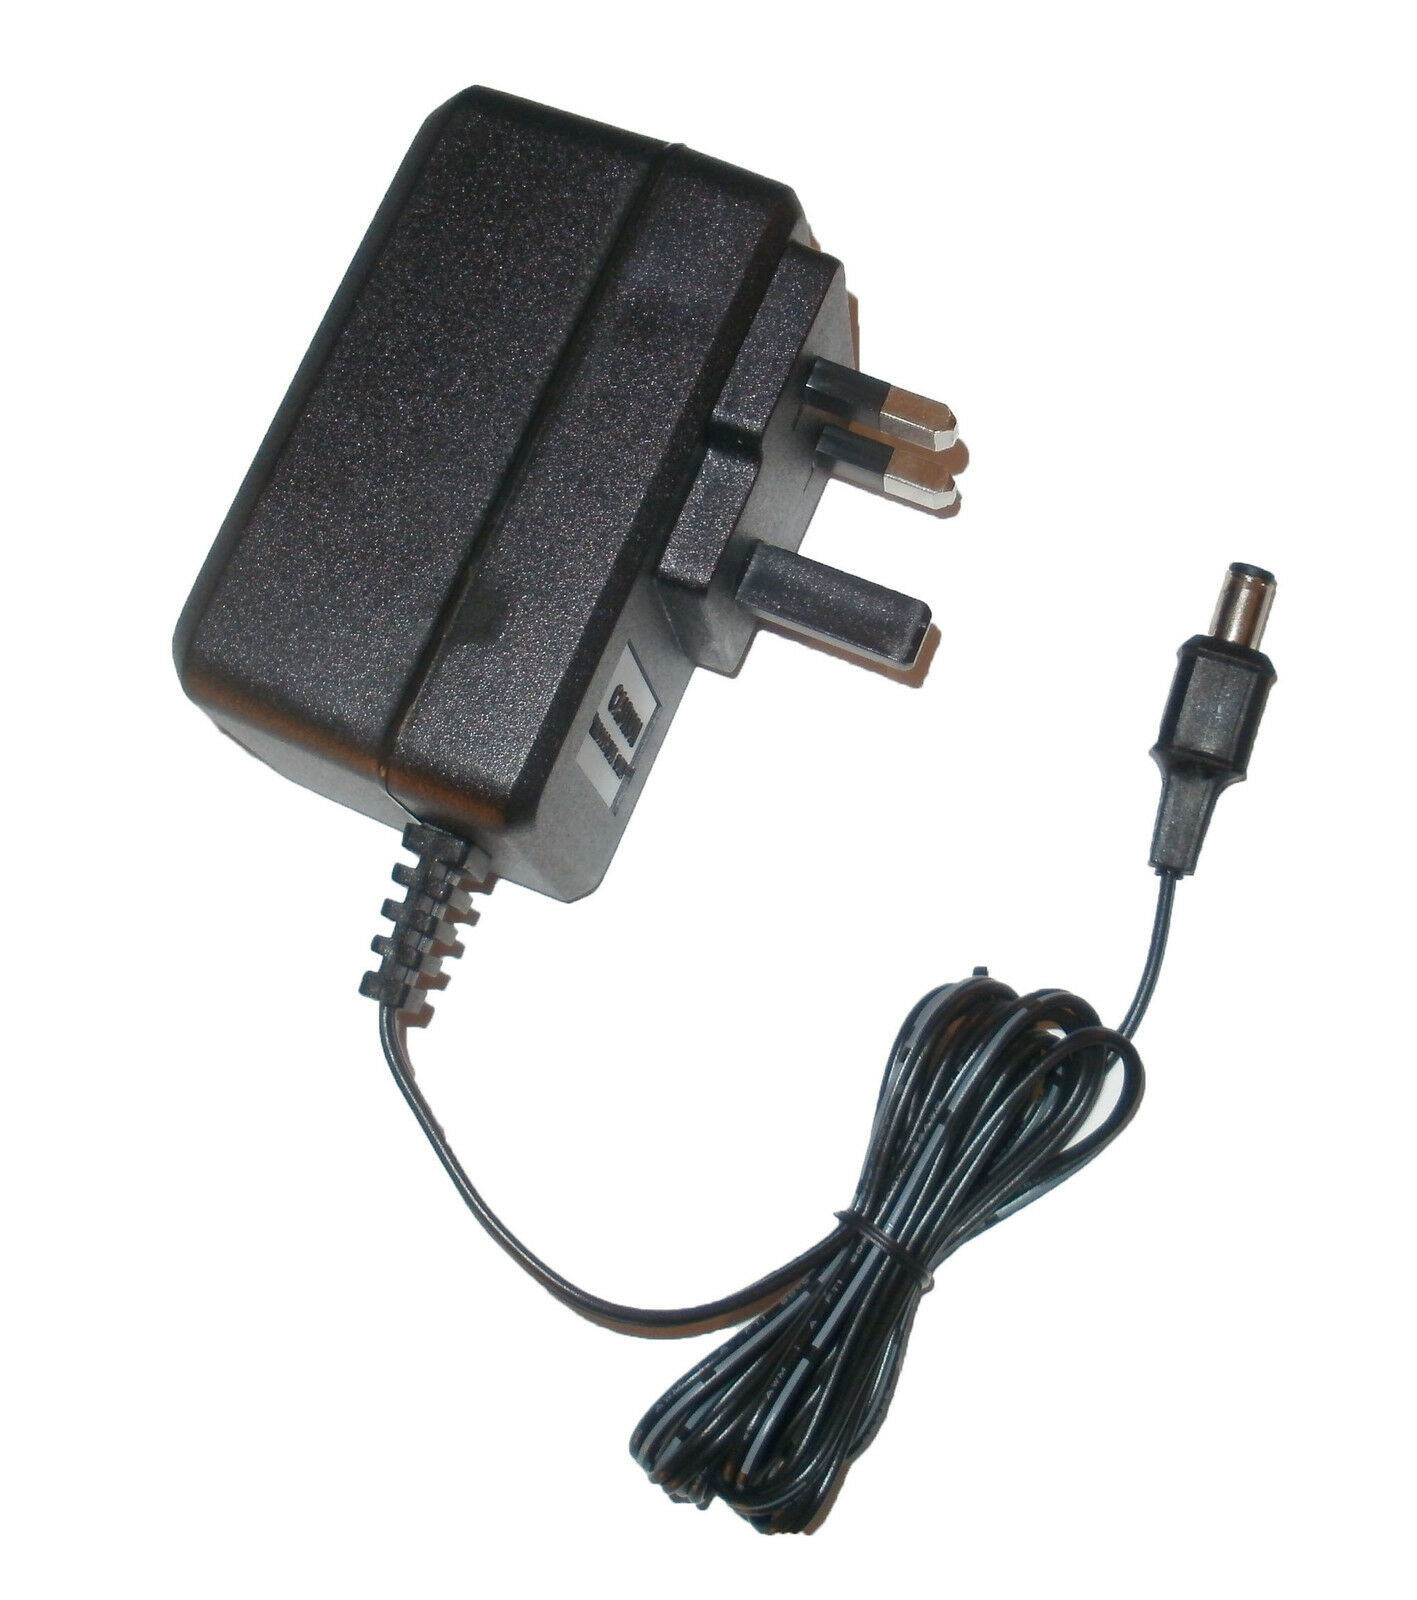 Lexicon Mx200 Power Supply Replacement Adapter Uk 9v 163 10